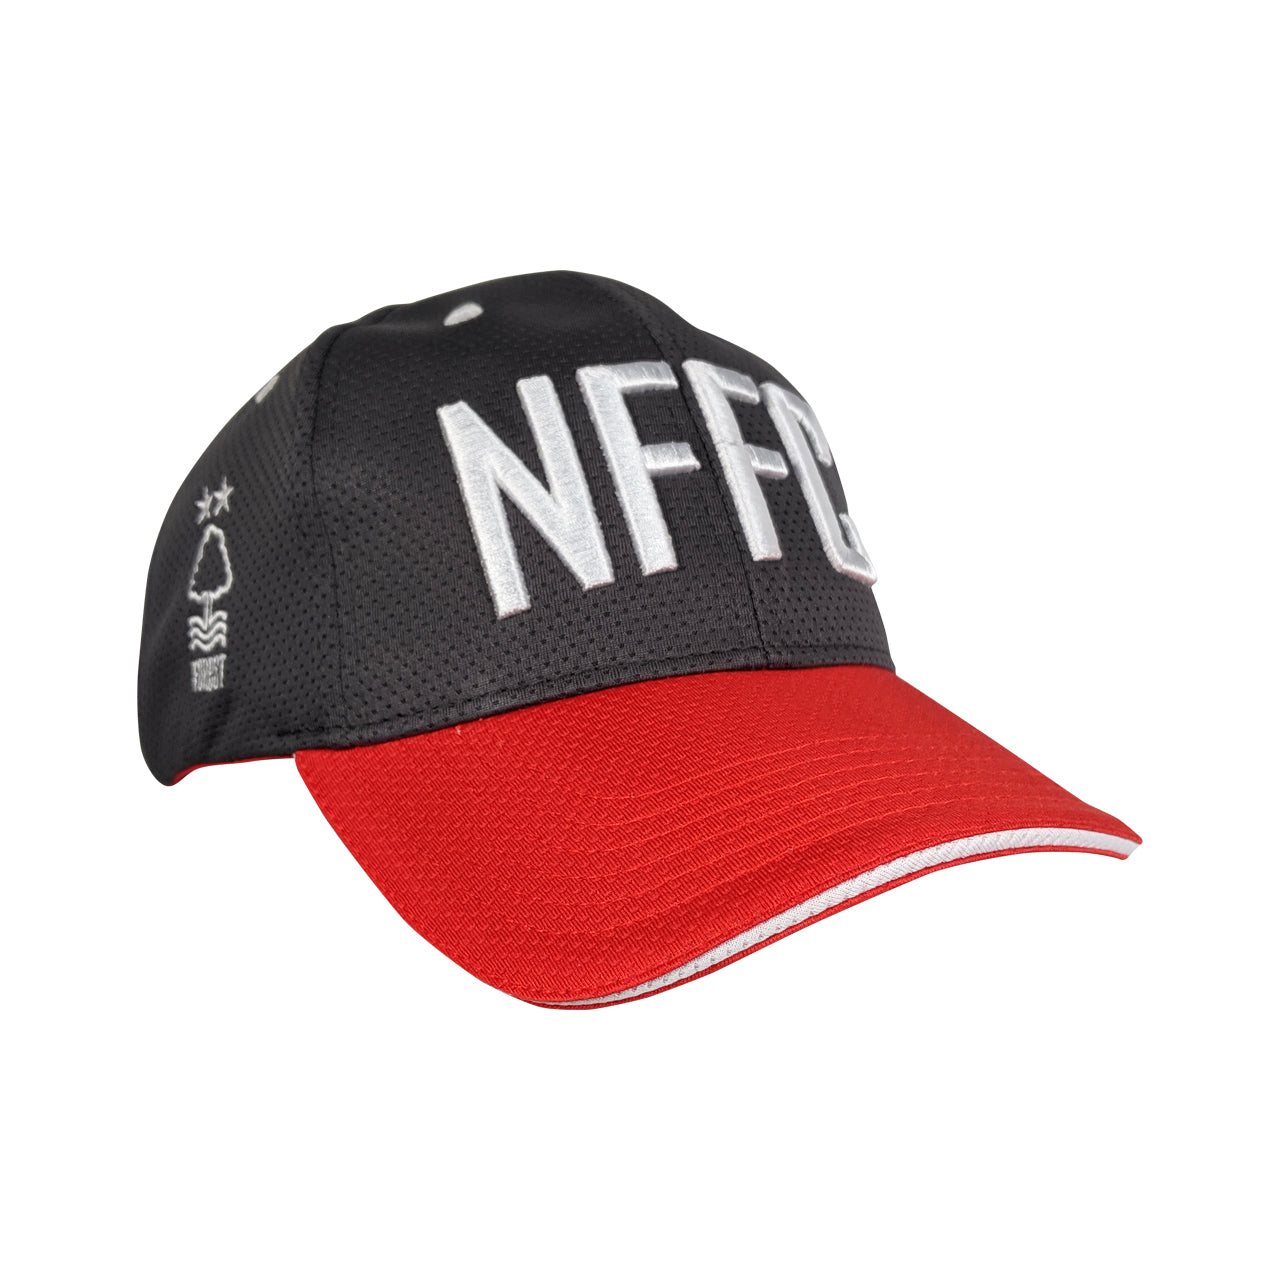 NFFC Adult Macron Baseball Cap - Nottingham Forest